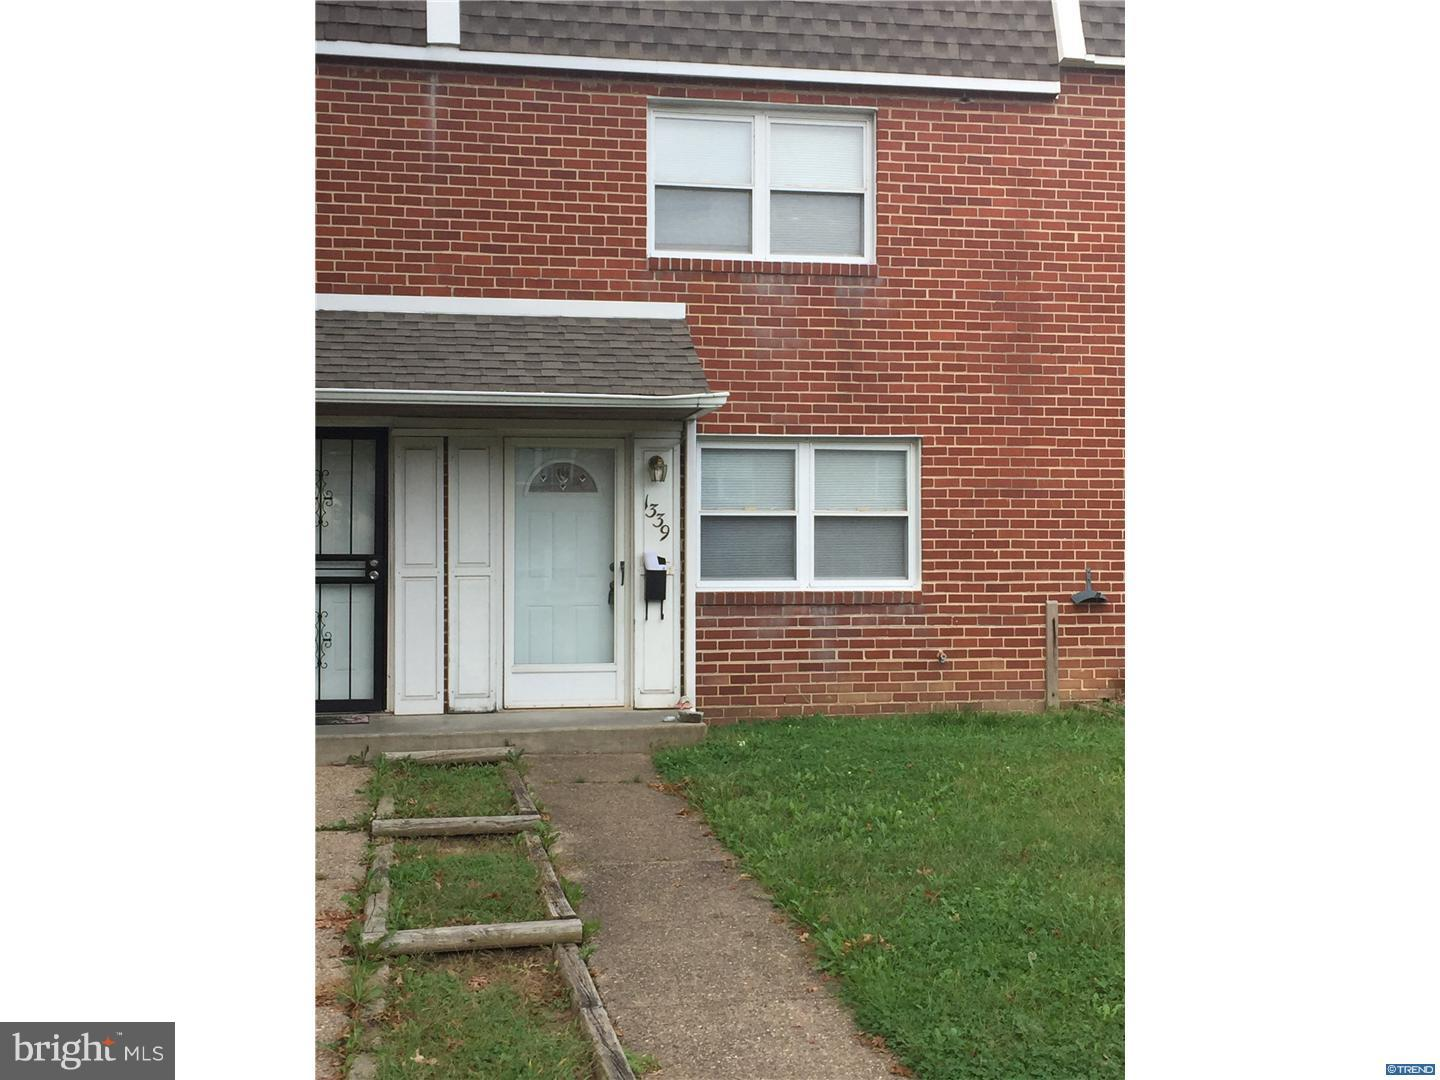 Single Family Home for Sale at 1339 MAPLE Avenue Elsmere, Delaware 19805 United States